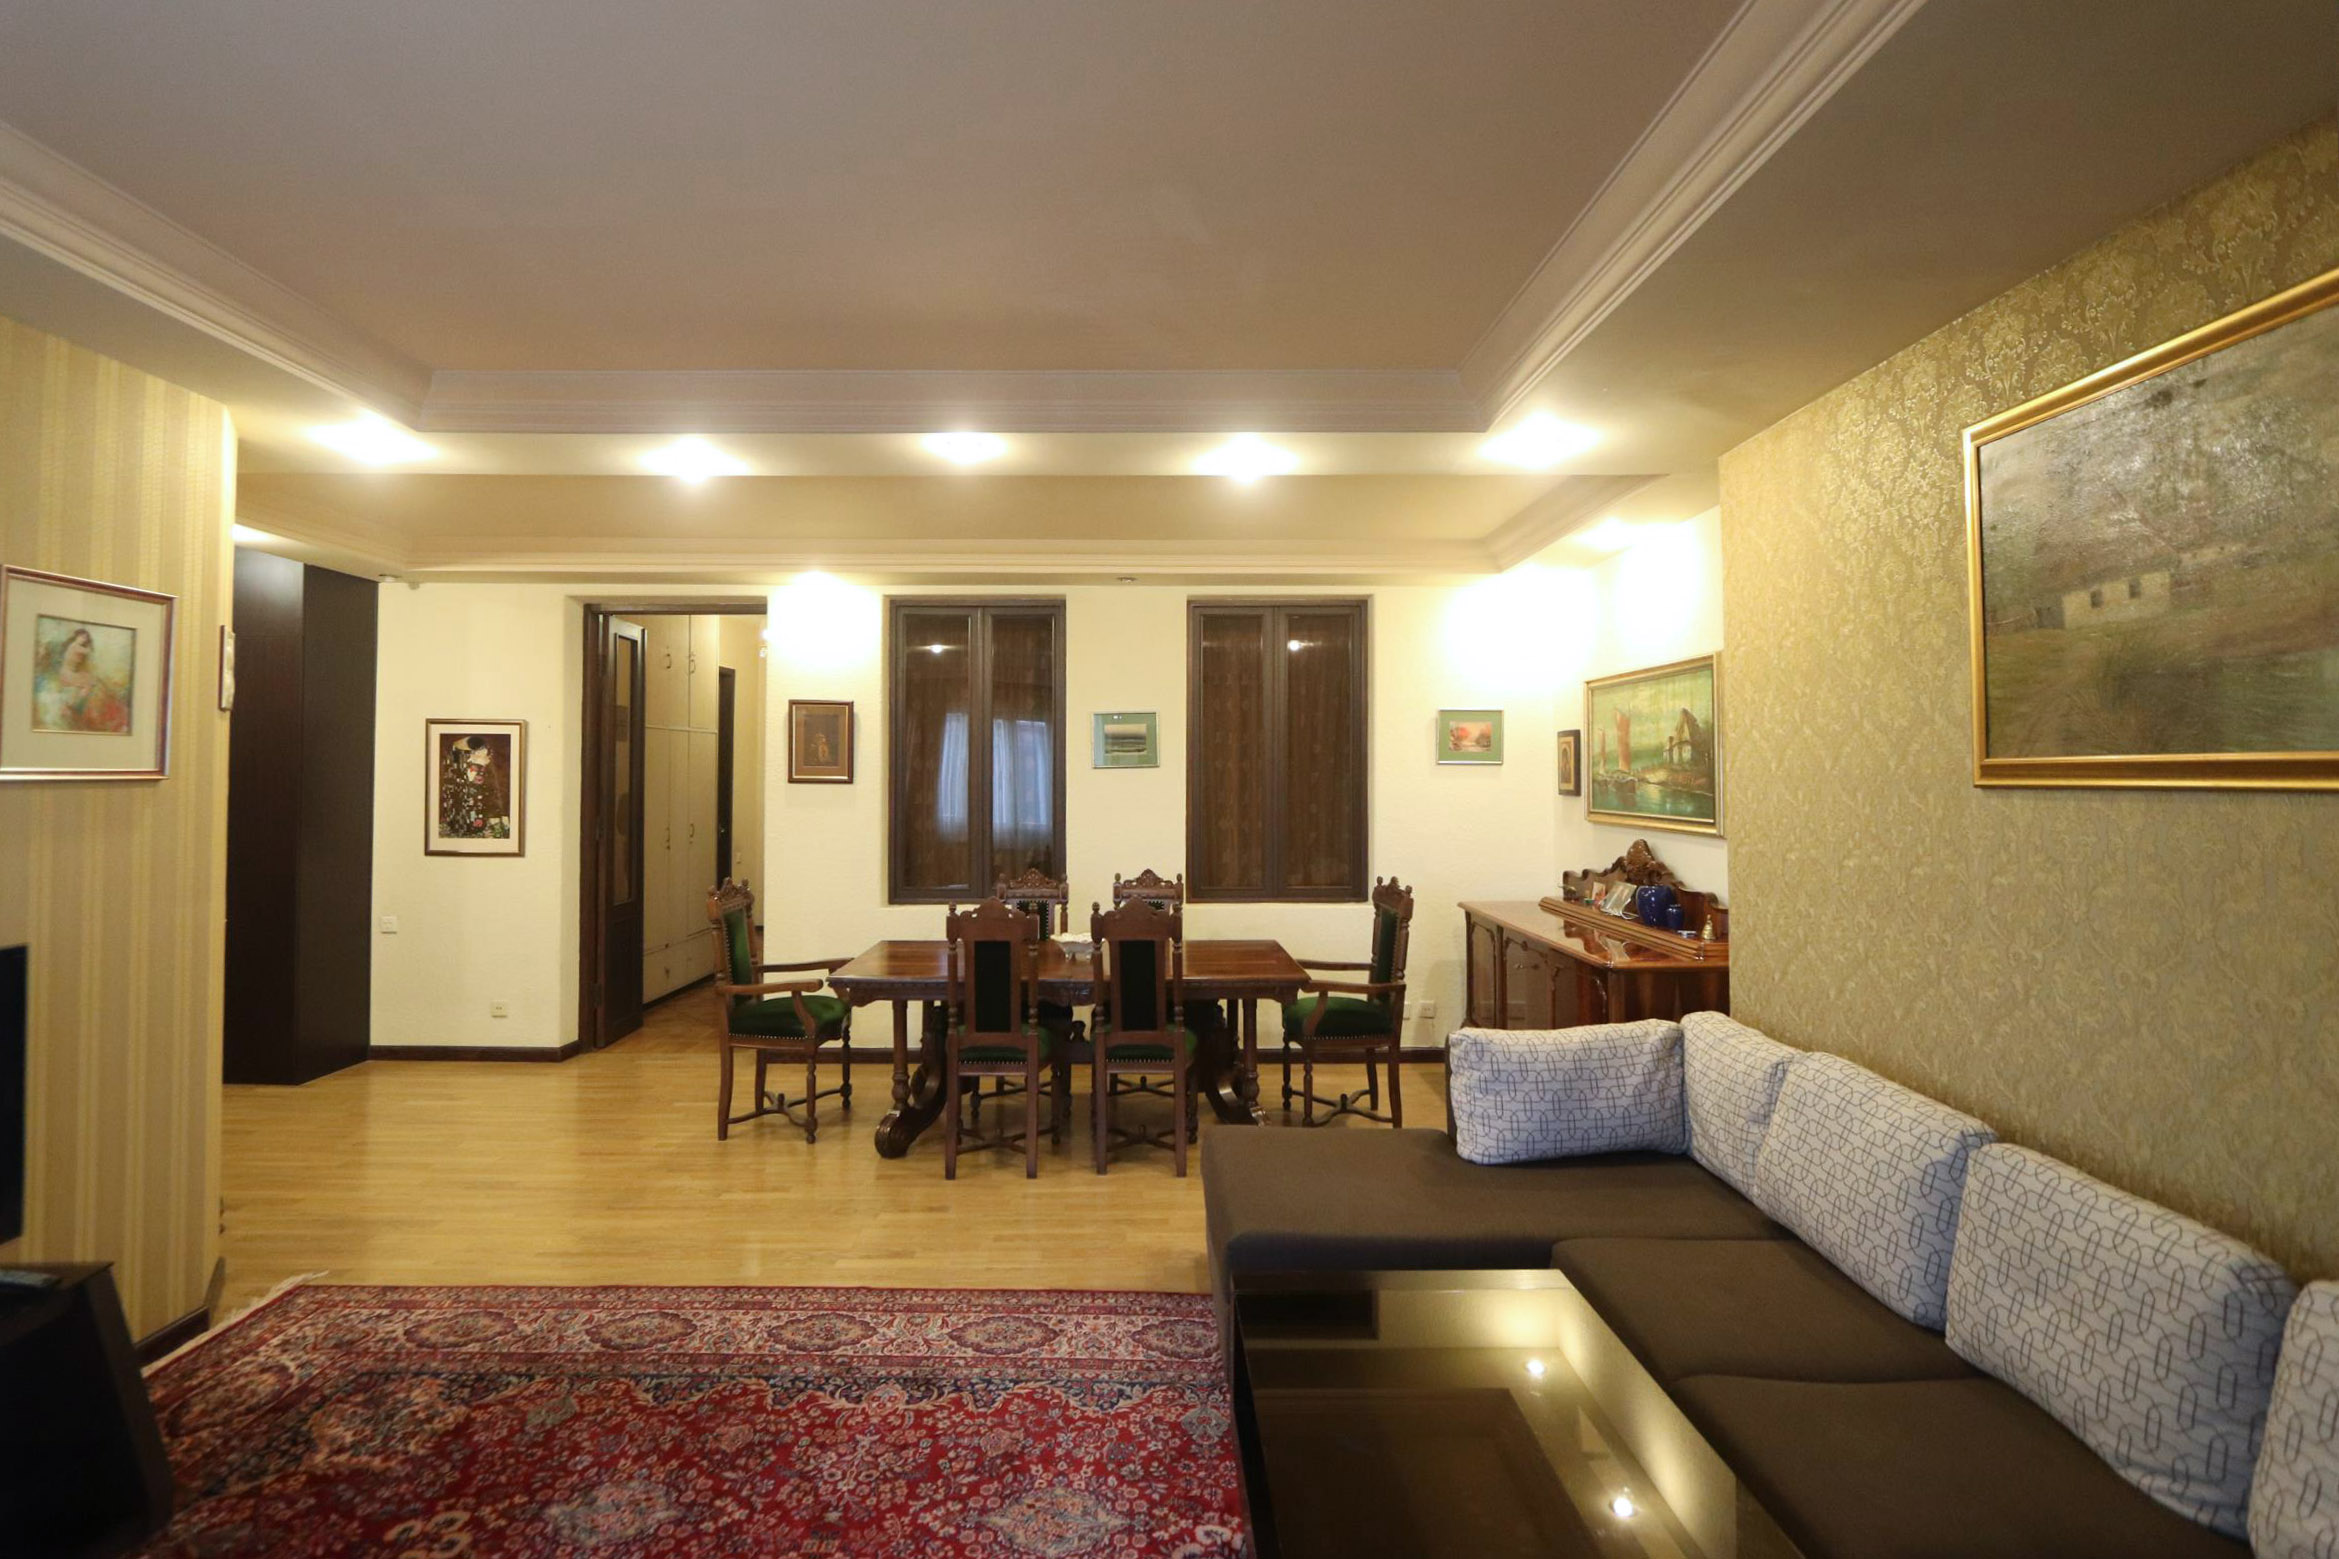 6br1ba-house-in-a-3-story-building-on-the-2nd-floor-in-yerevan